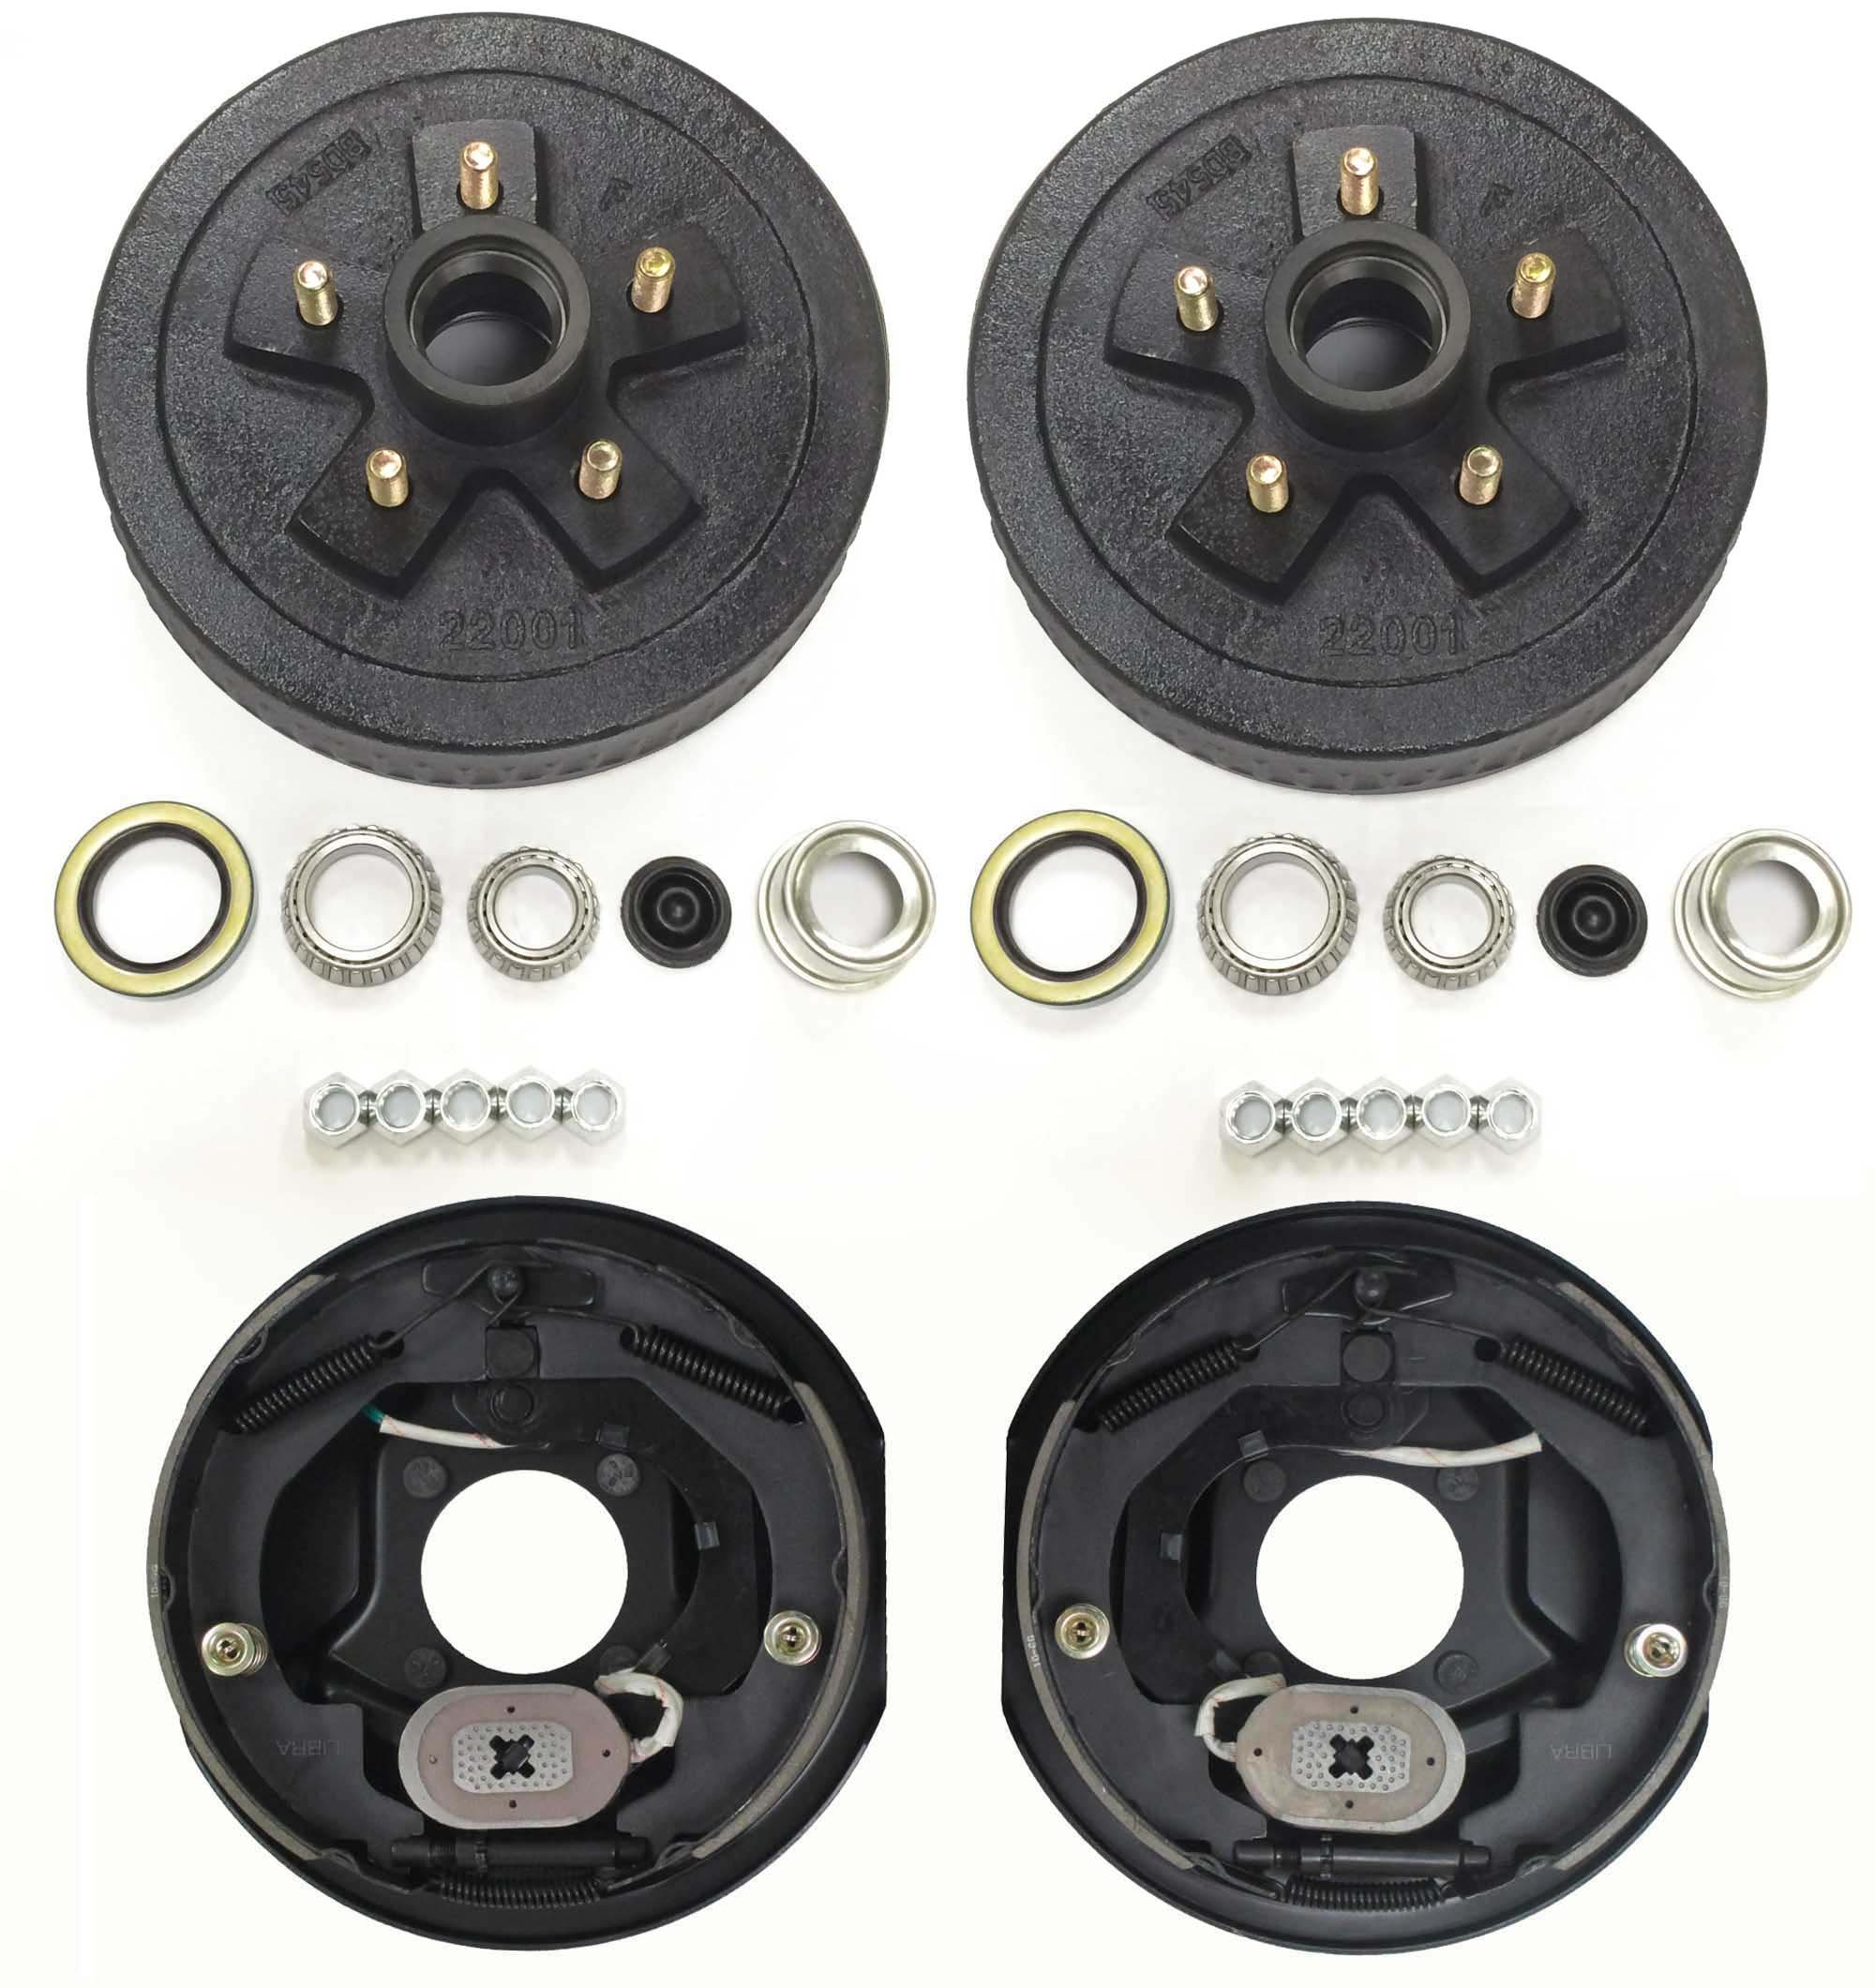 LIBRA Trailer 5 on 4.5'' B.C. Hub Drum Kits with 10'' x2-1/4 Electric Brakes for 3500 Lbs Axle by LIBRA